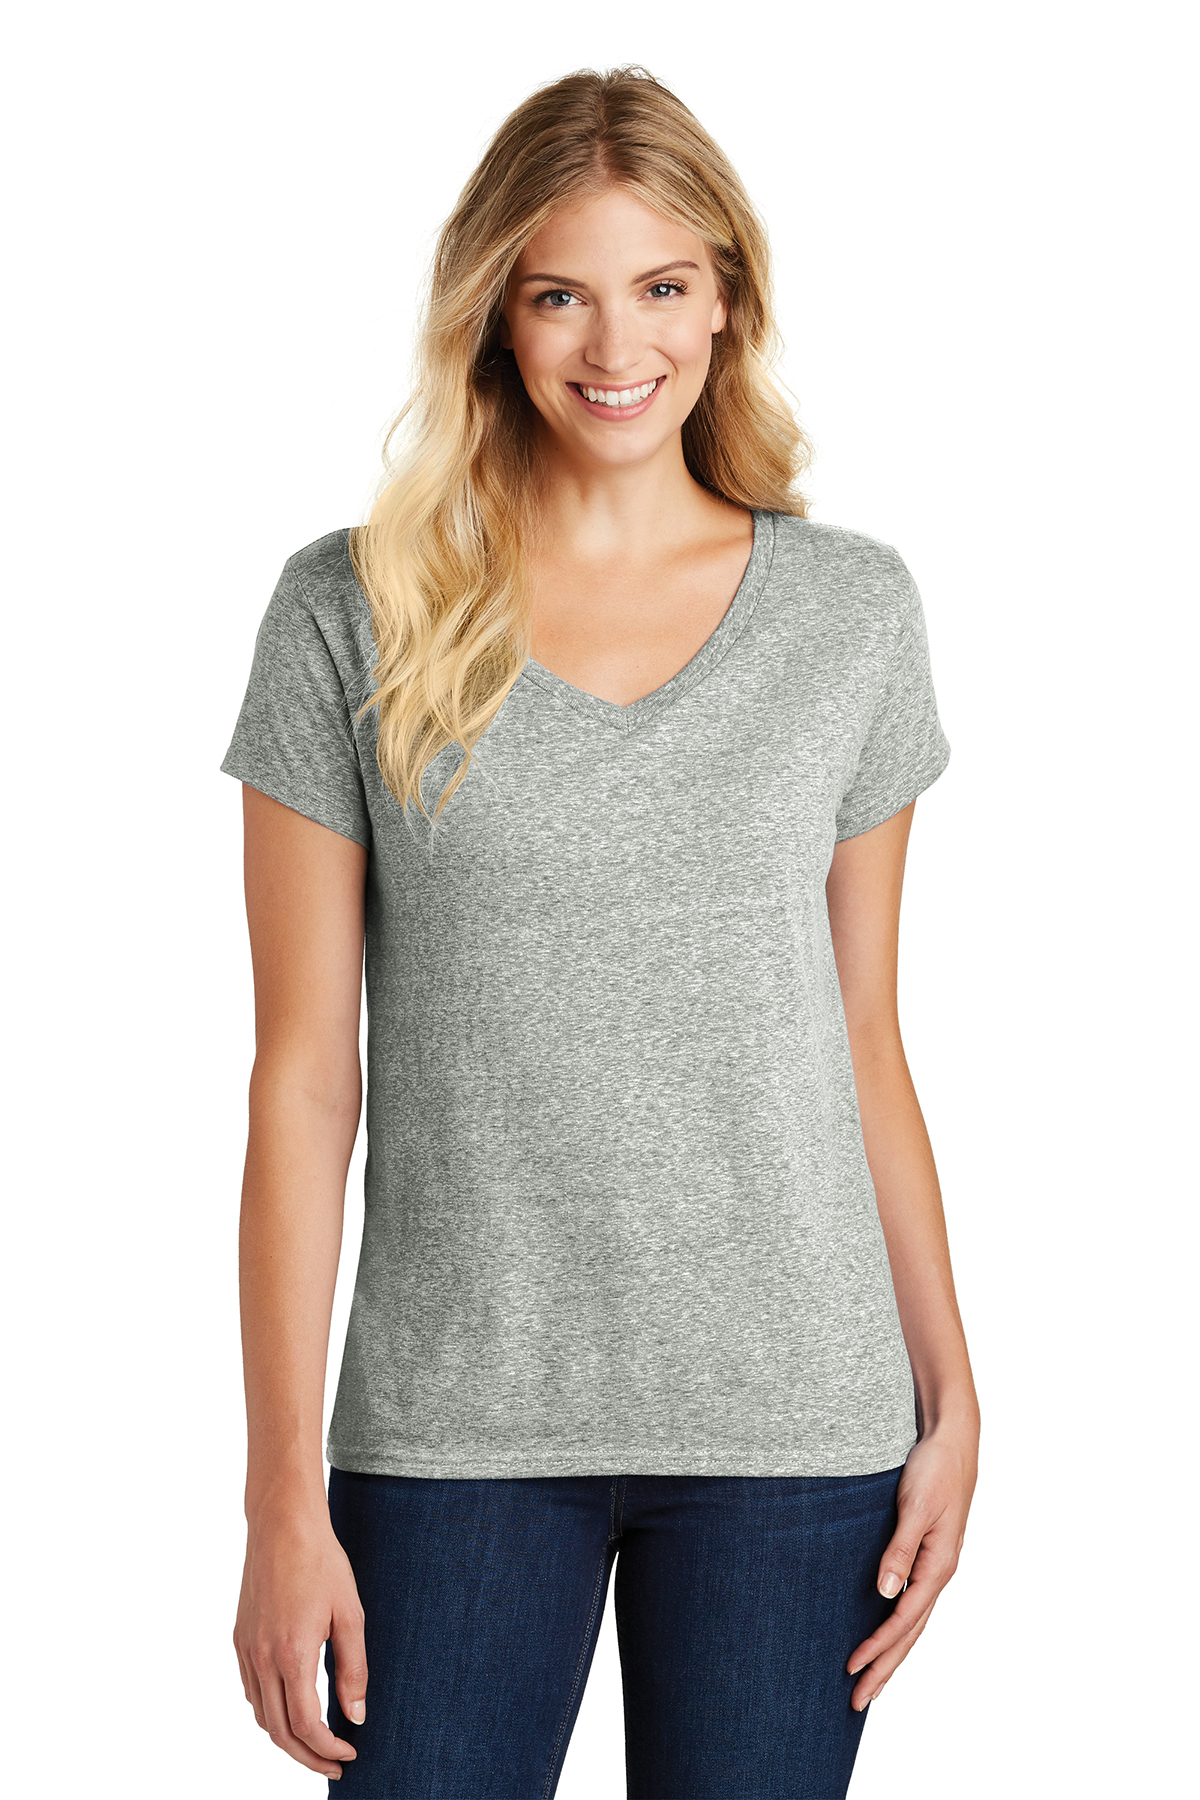 District Made DM465A - Ladies Cosmic Relaxed V-Neck Tee